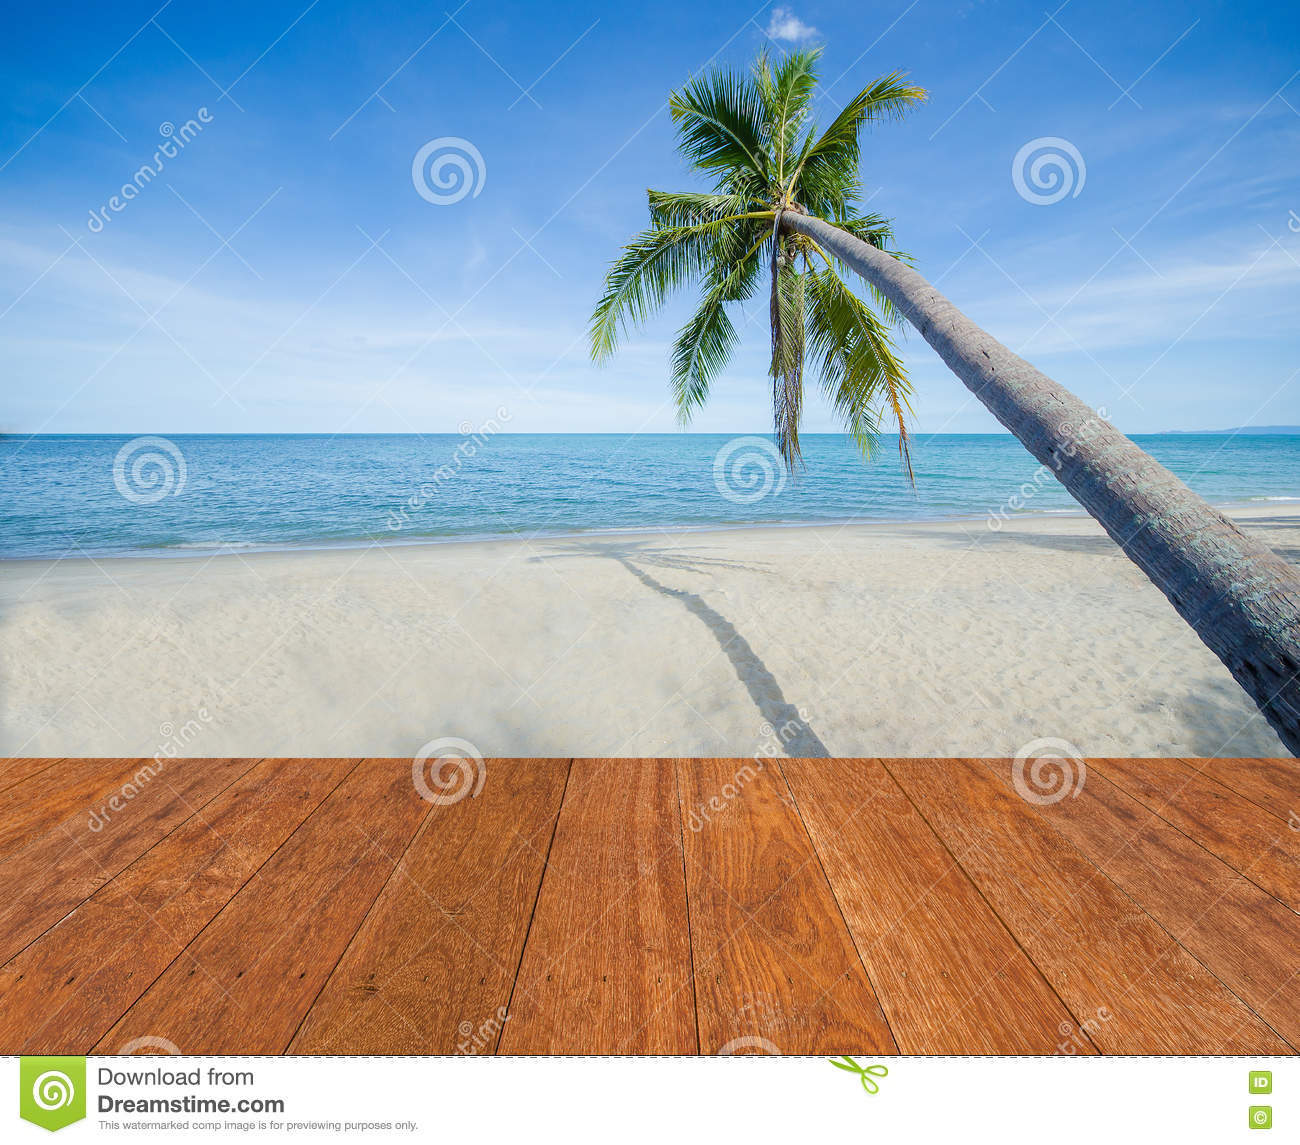 Sand Beach In Summer Sky Background: Blue Sea, White Sand, Coconut Palm Tree And Blue Sky With